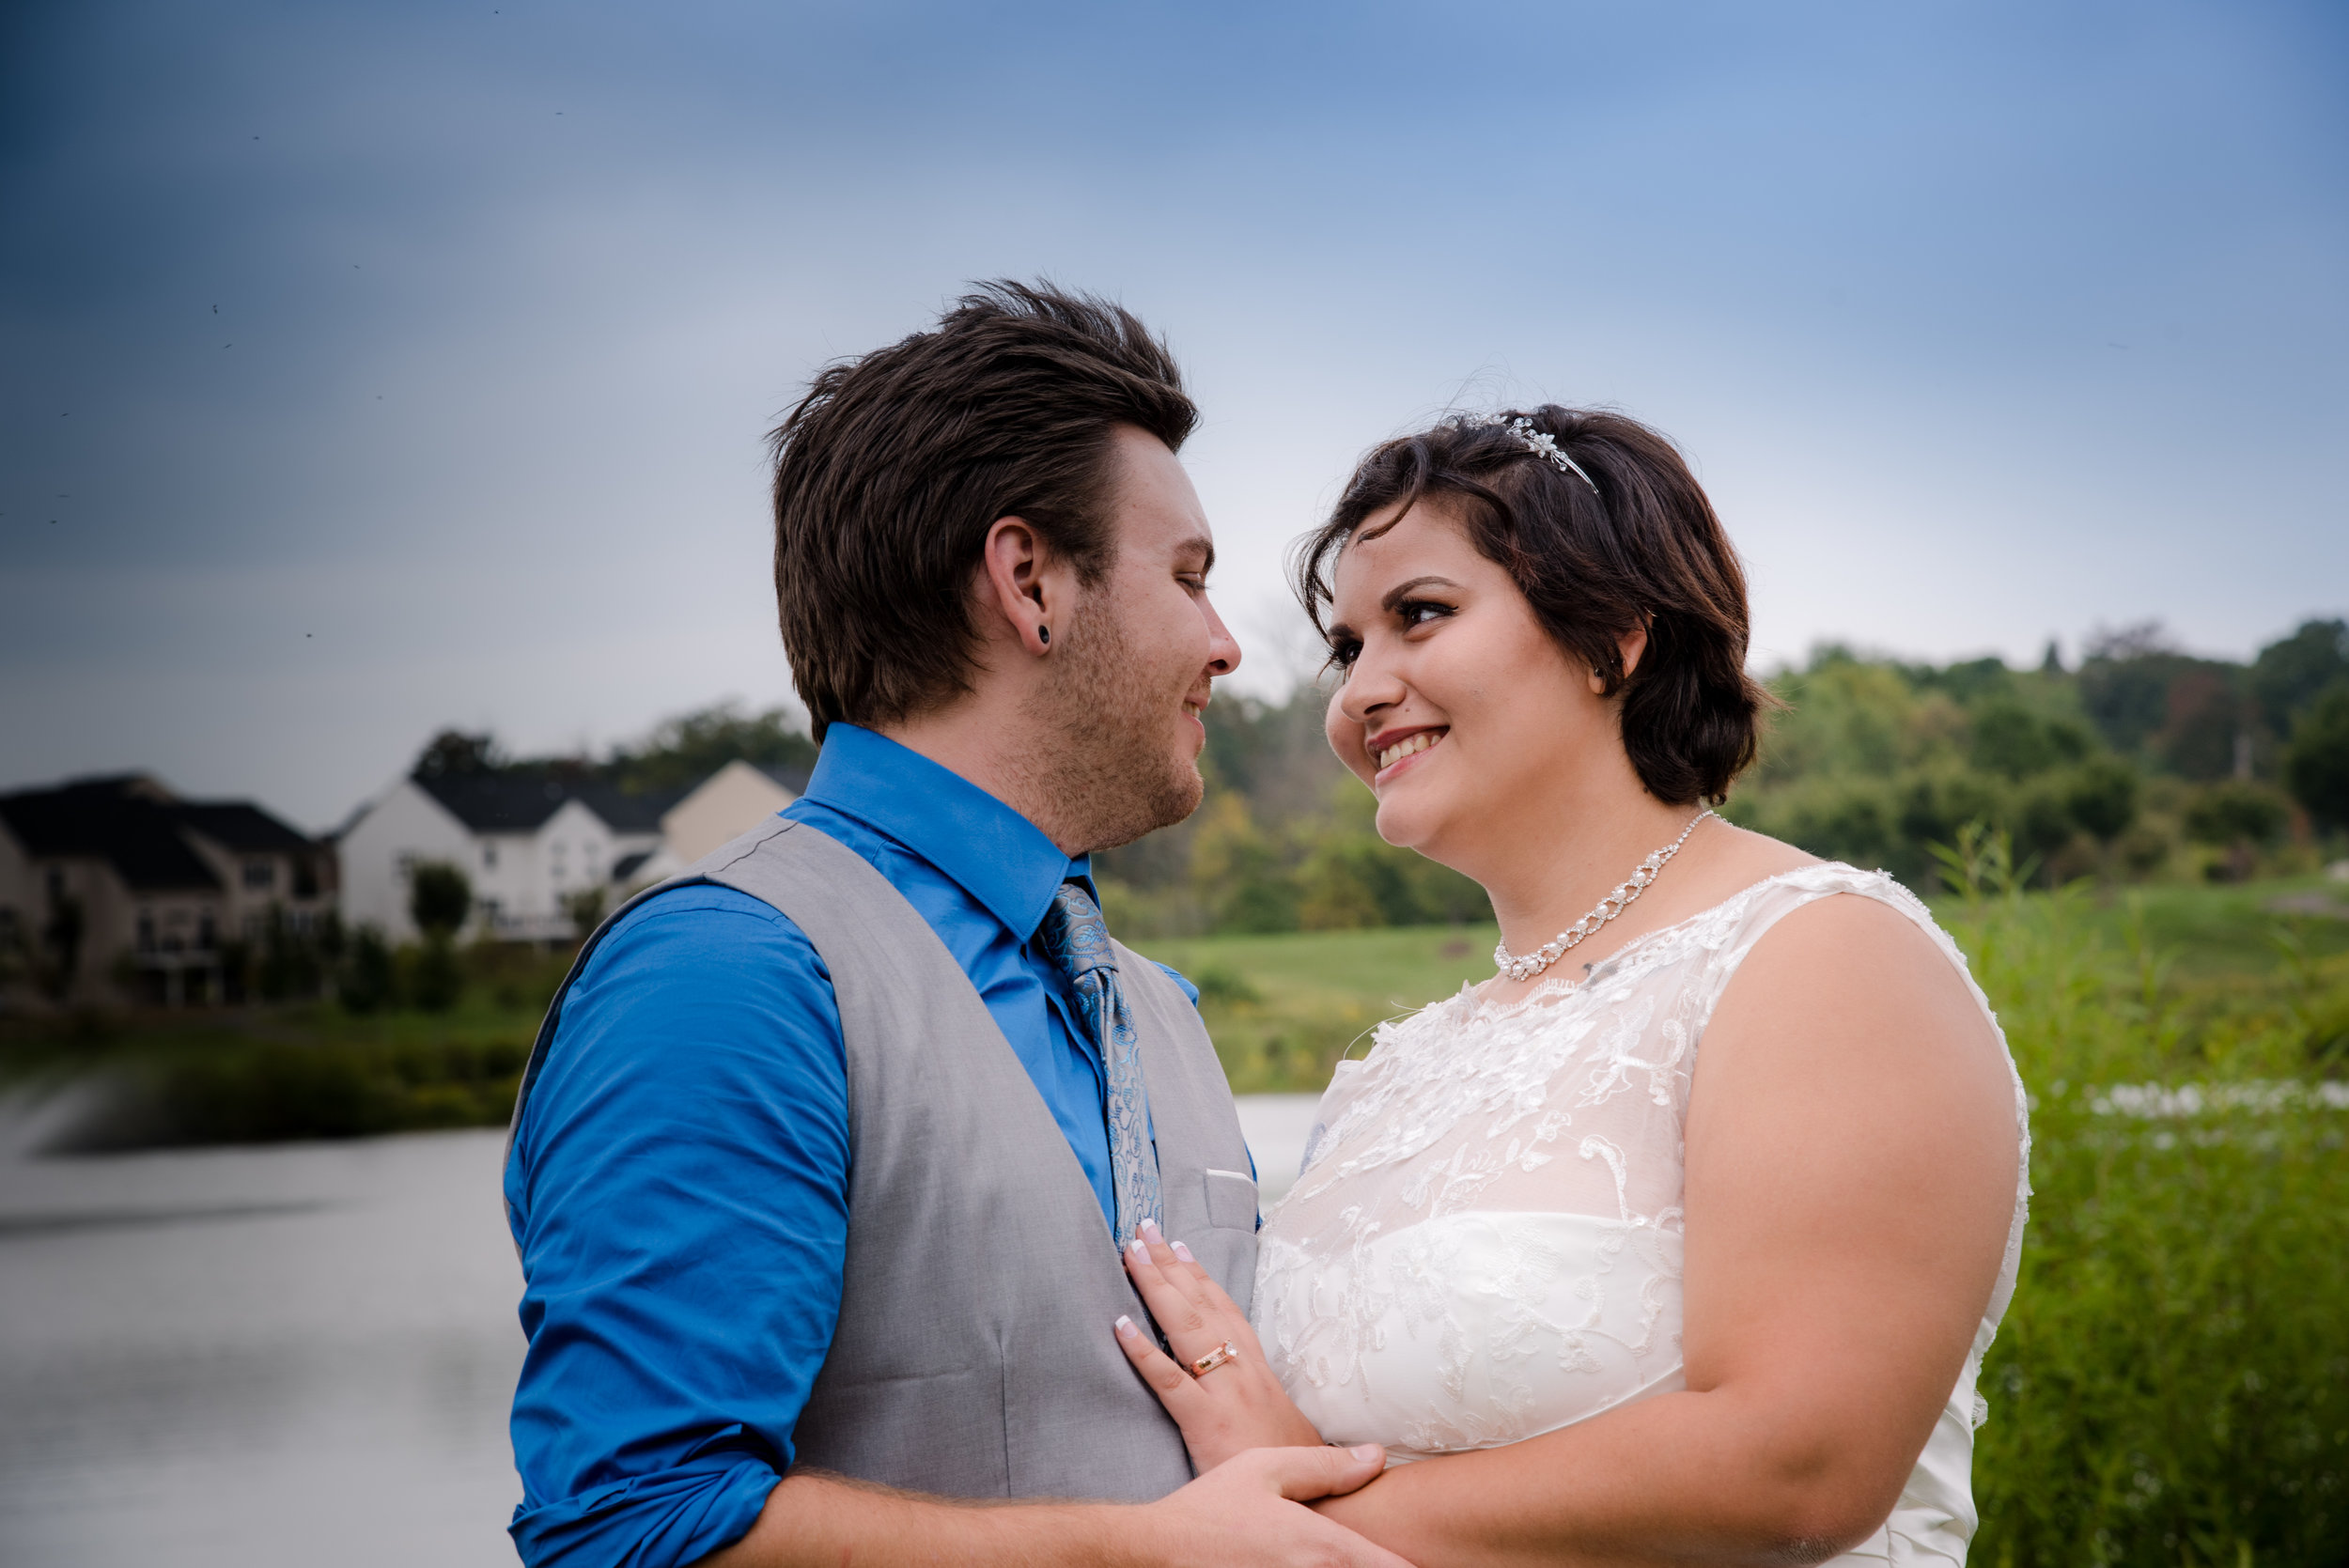 Tanner&Tiara_Wed-51.jpg